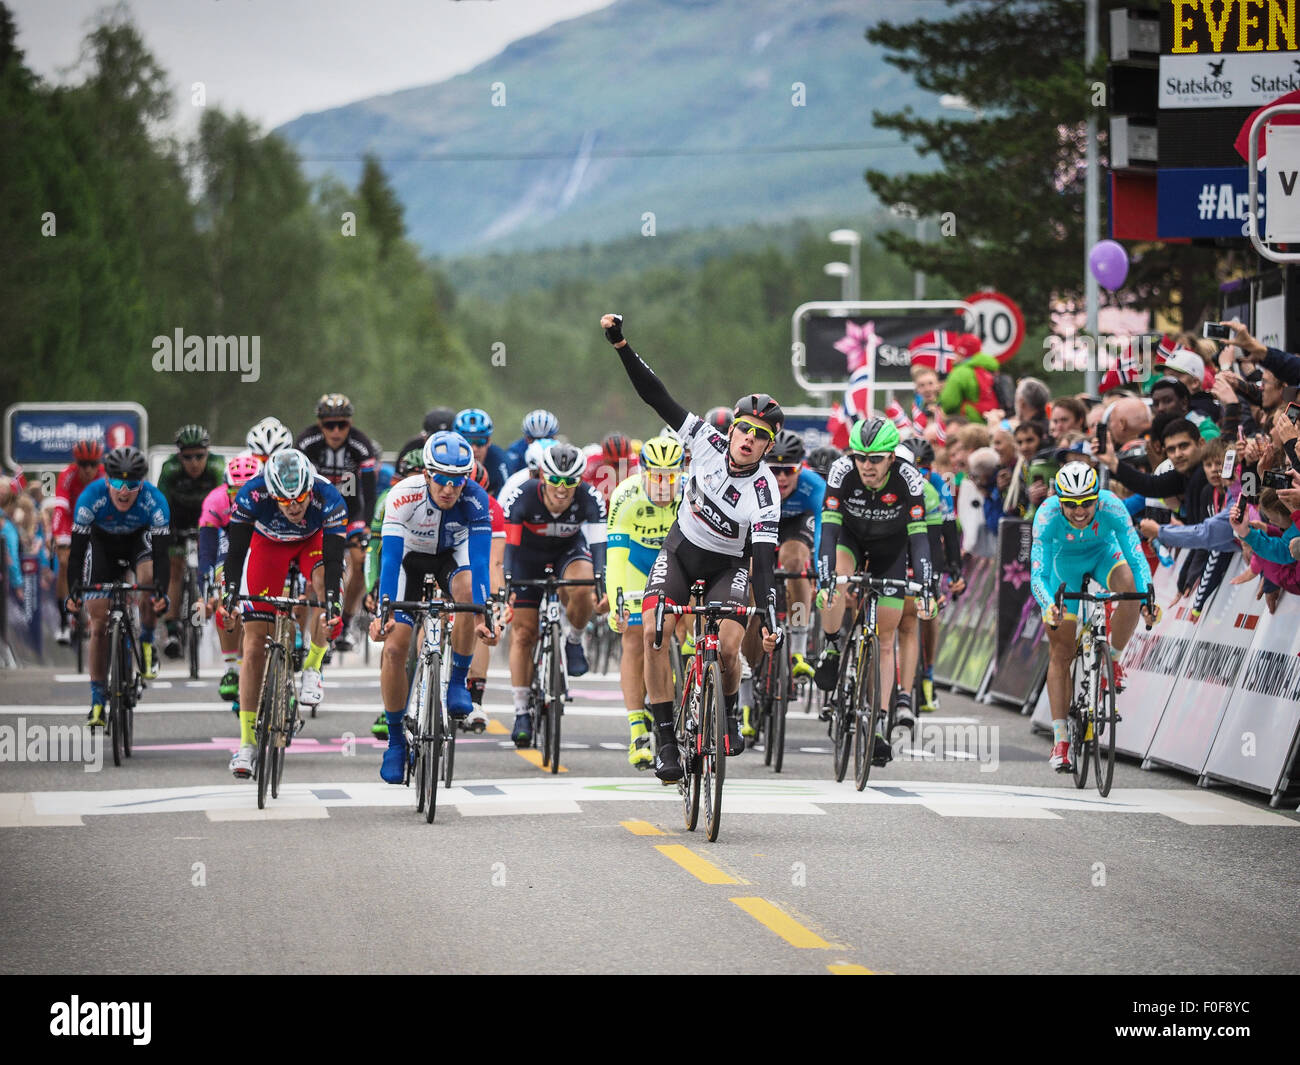 Setermoen, Norway. 14th August 2015. Sam Bennett from Ireland cycling for Bora-Argon 18 is winning the 2nd stage - Stock Image